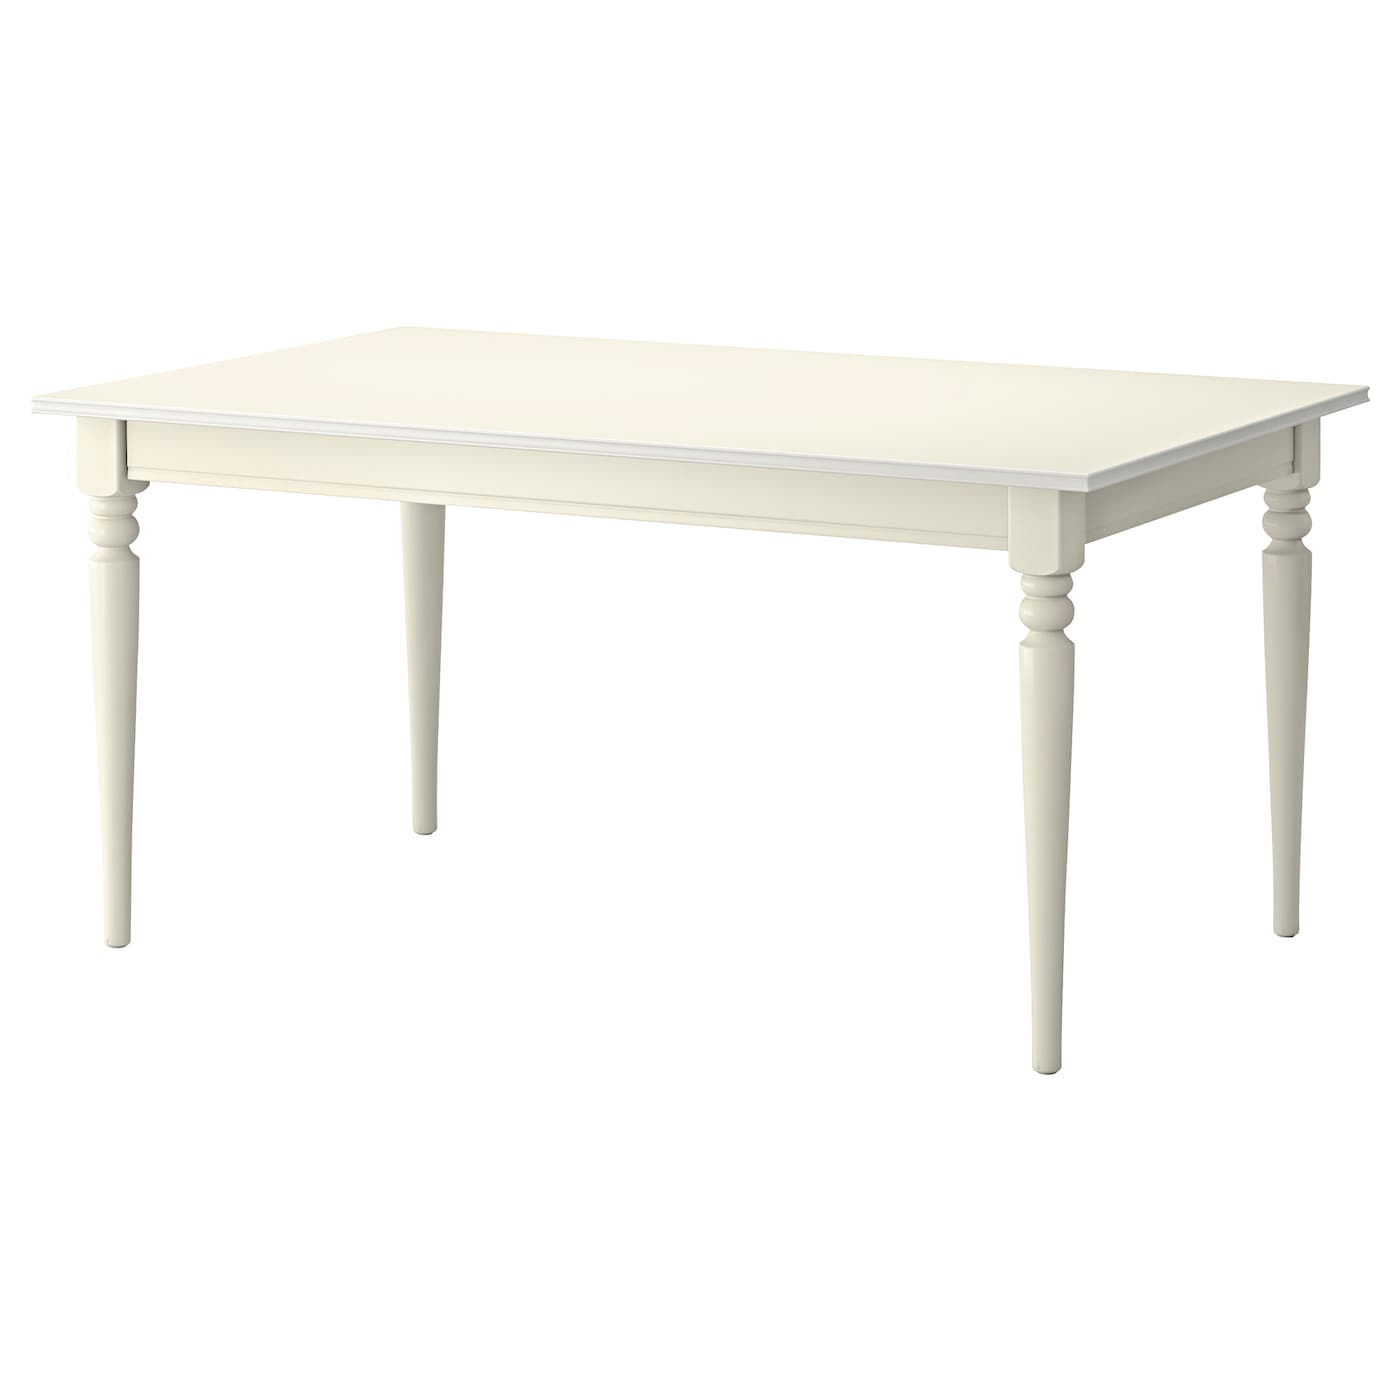 IKEA INGATORP extendable table 1 extension leaf included. Can be easily extended by one person.